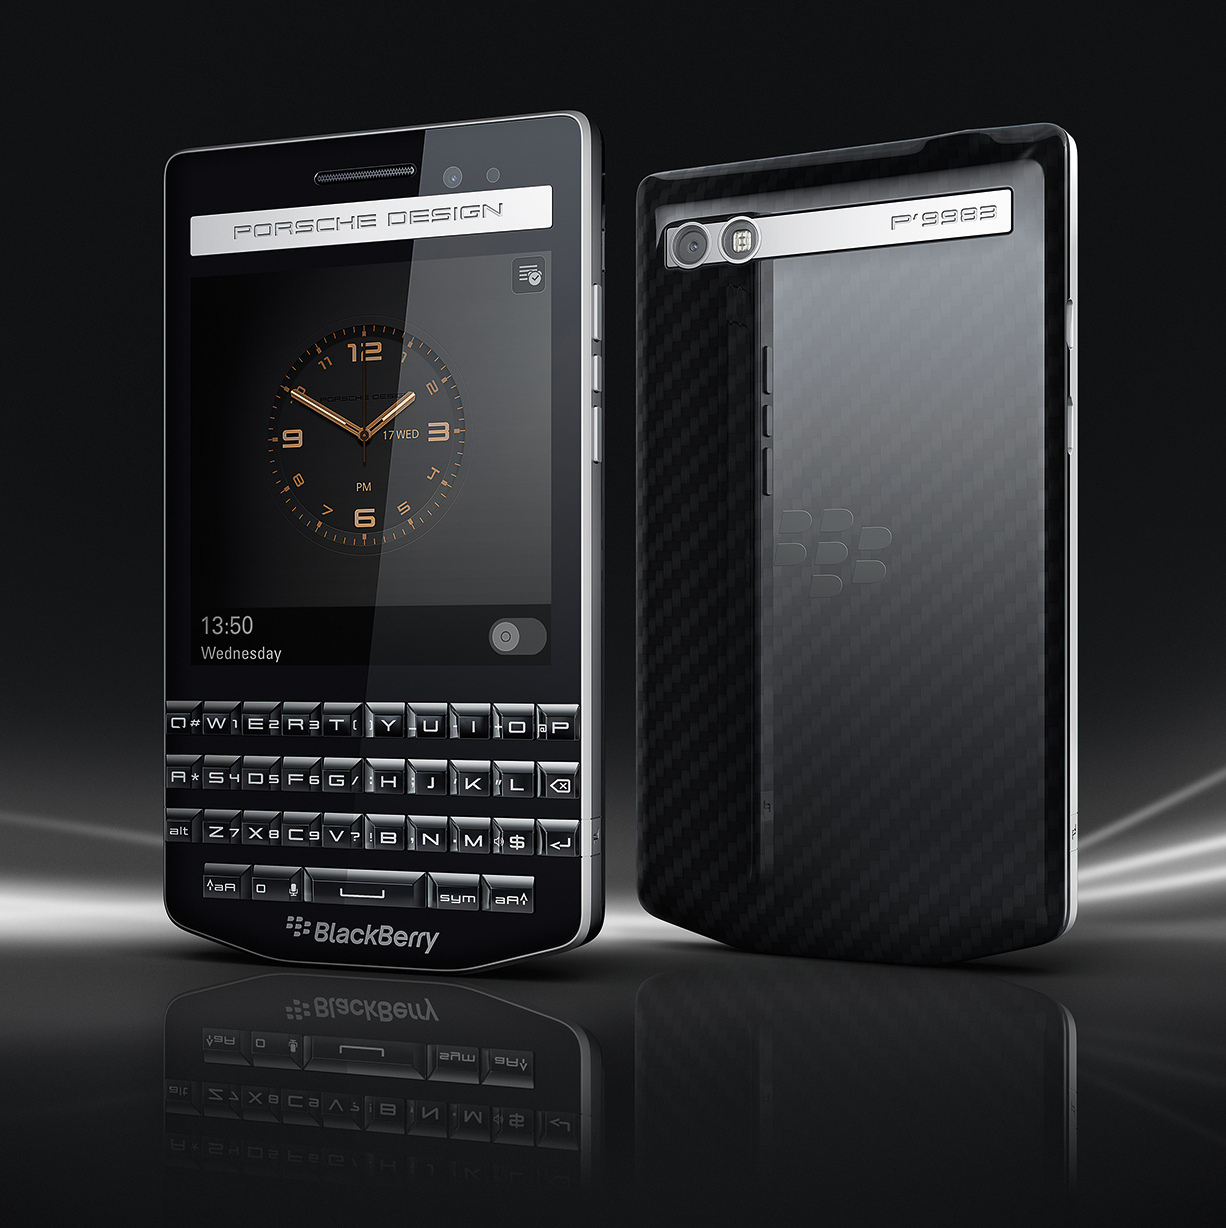 Blackberry Porsche Design P9883